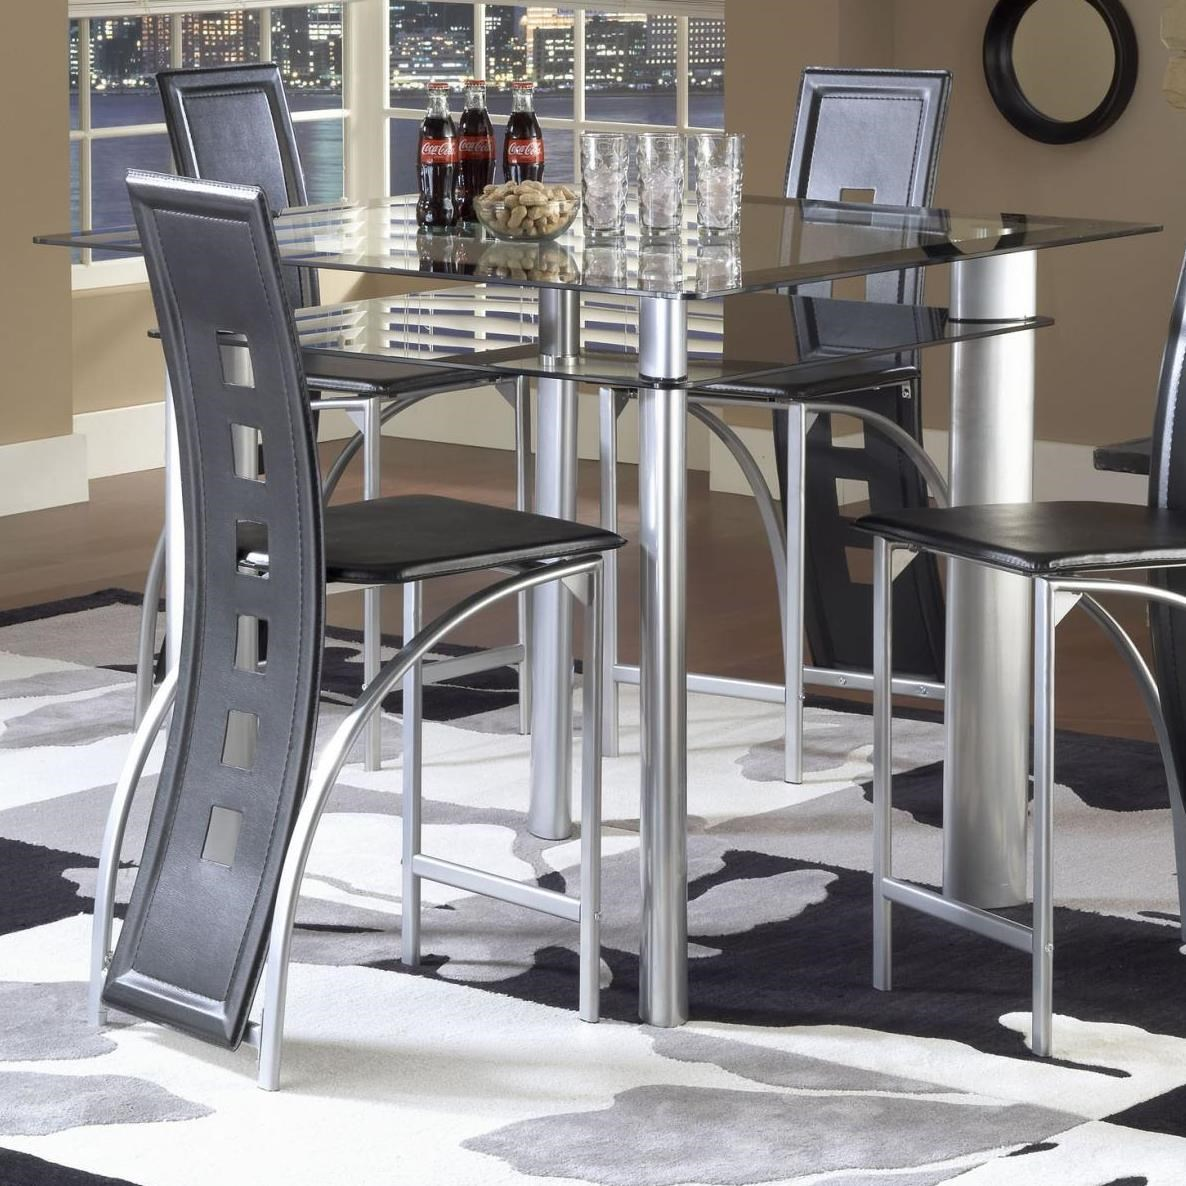 Bernards Astro Smoked Glass Counter Height Pub Table   Black / Satin Silver